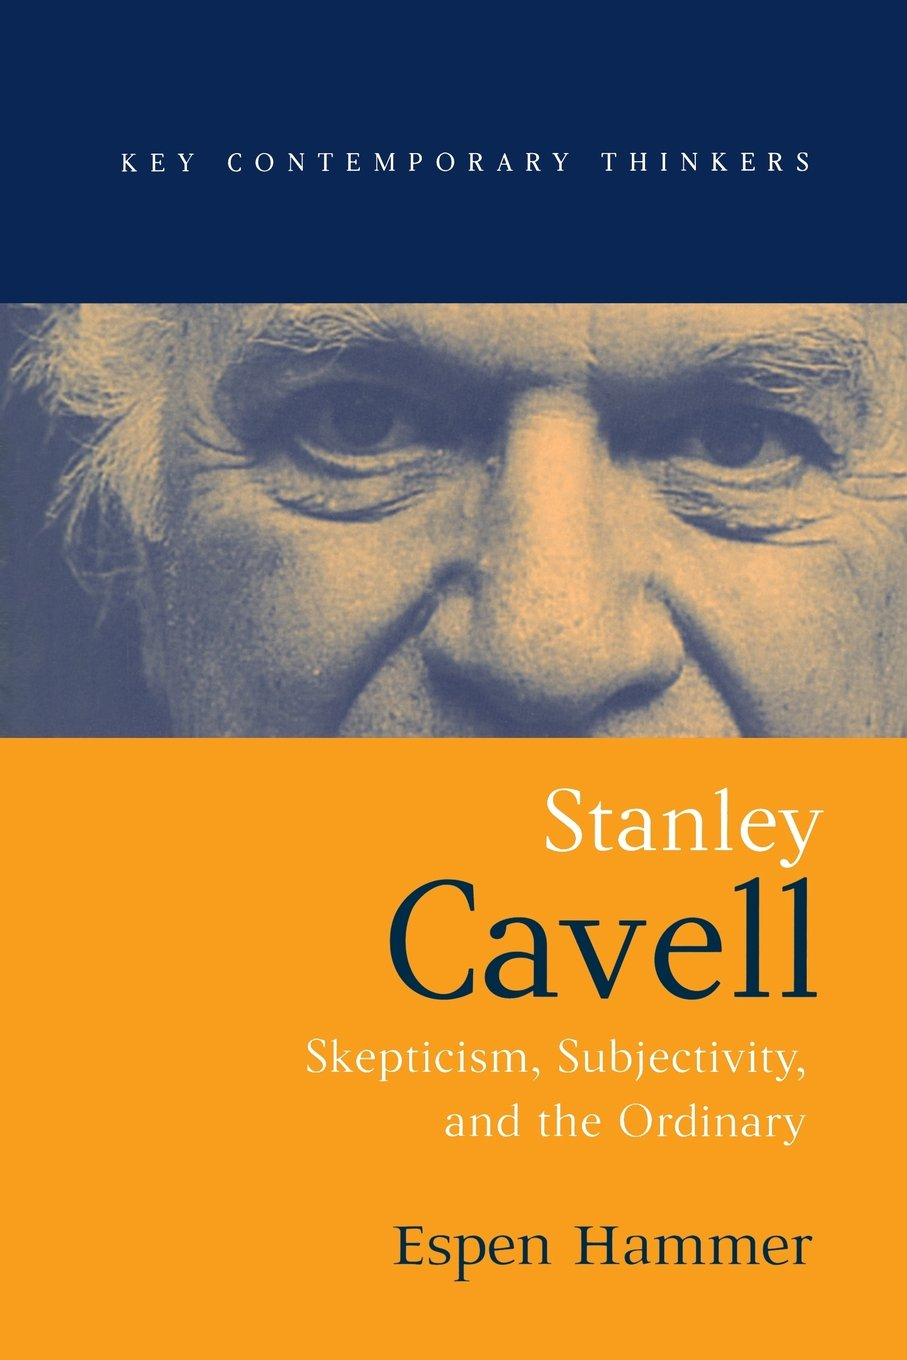 Download Stanley Cavell: Skepticism, Subjectivity, and the Ordinary PDF